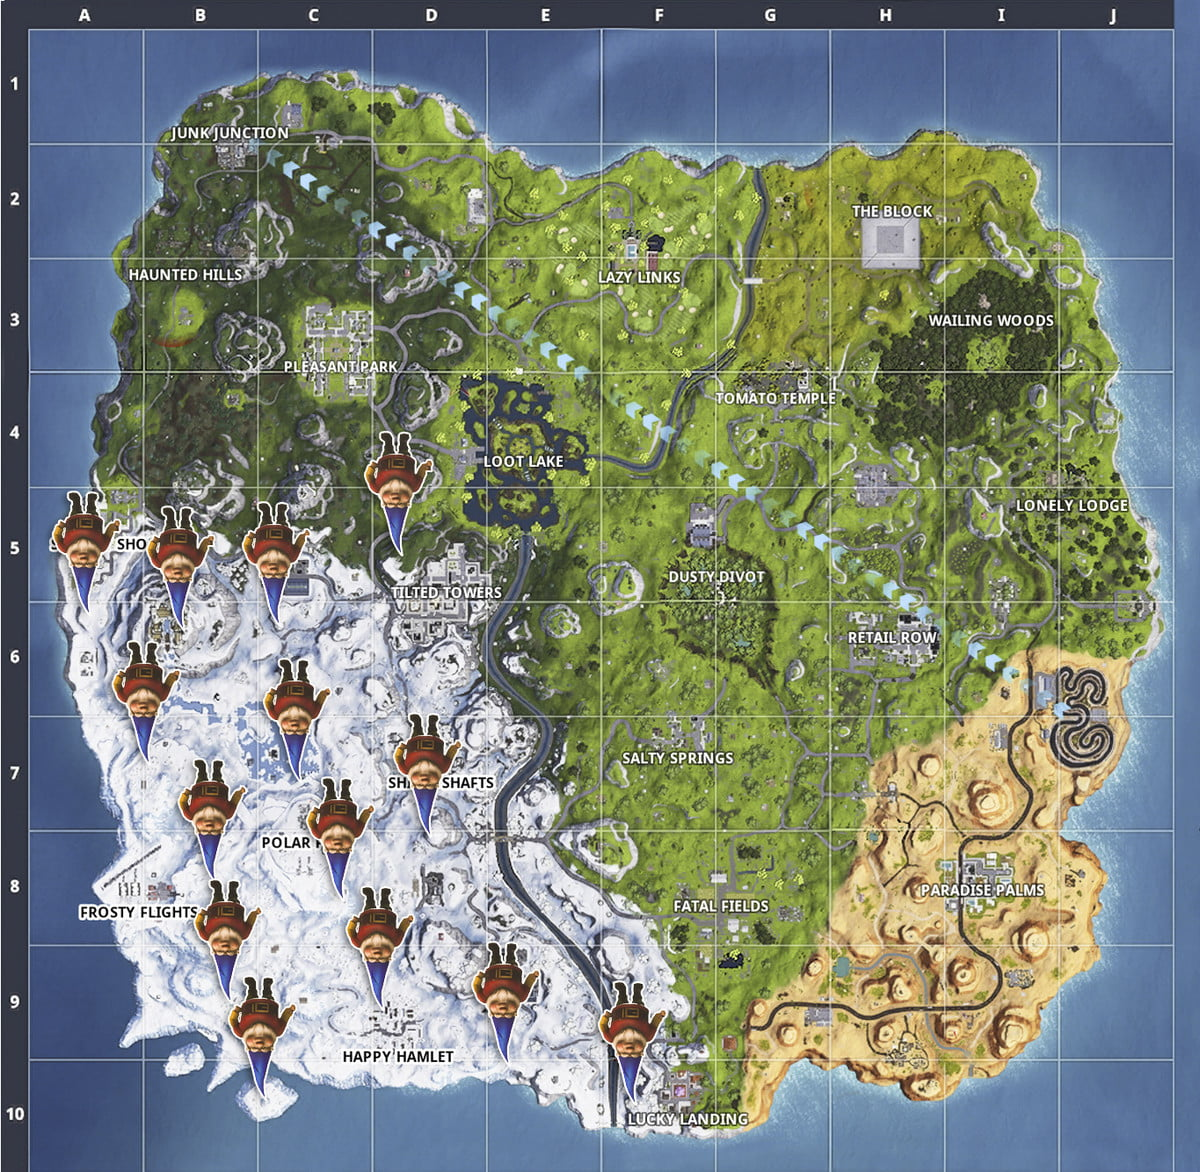 Fortnite season 7 week 6 challenges search for chilly gnomes locations map